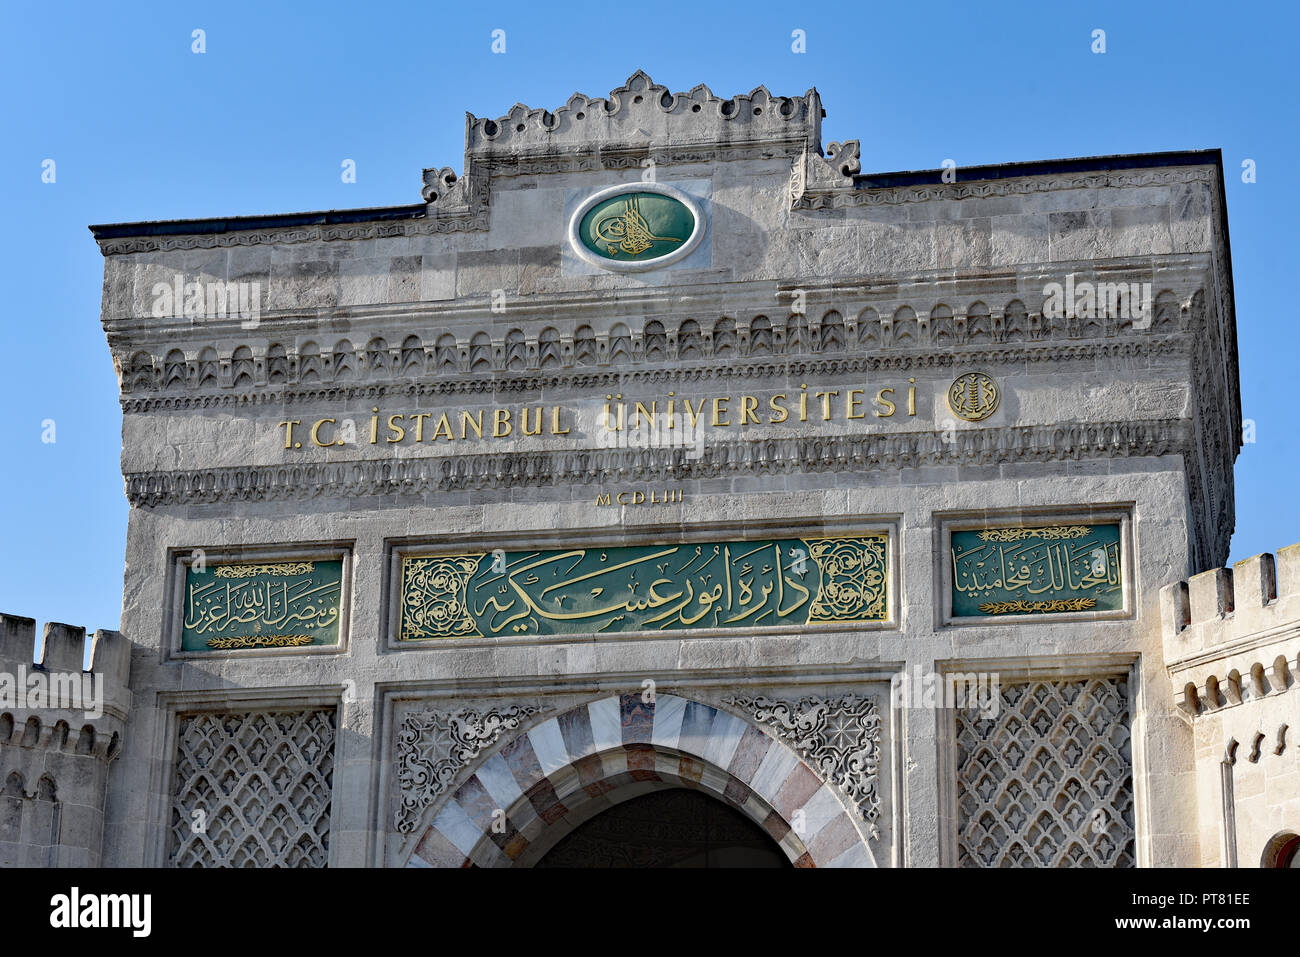 Close-up of the fortress-like entrance to Istanbul University, Beyazit Square, the Bazaar Quarter, Istanbul, Turkey. - Stock Image